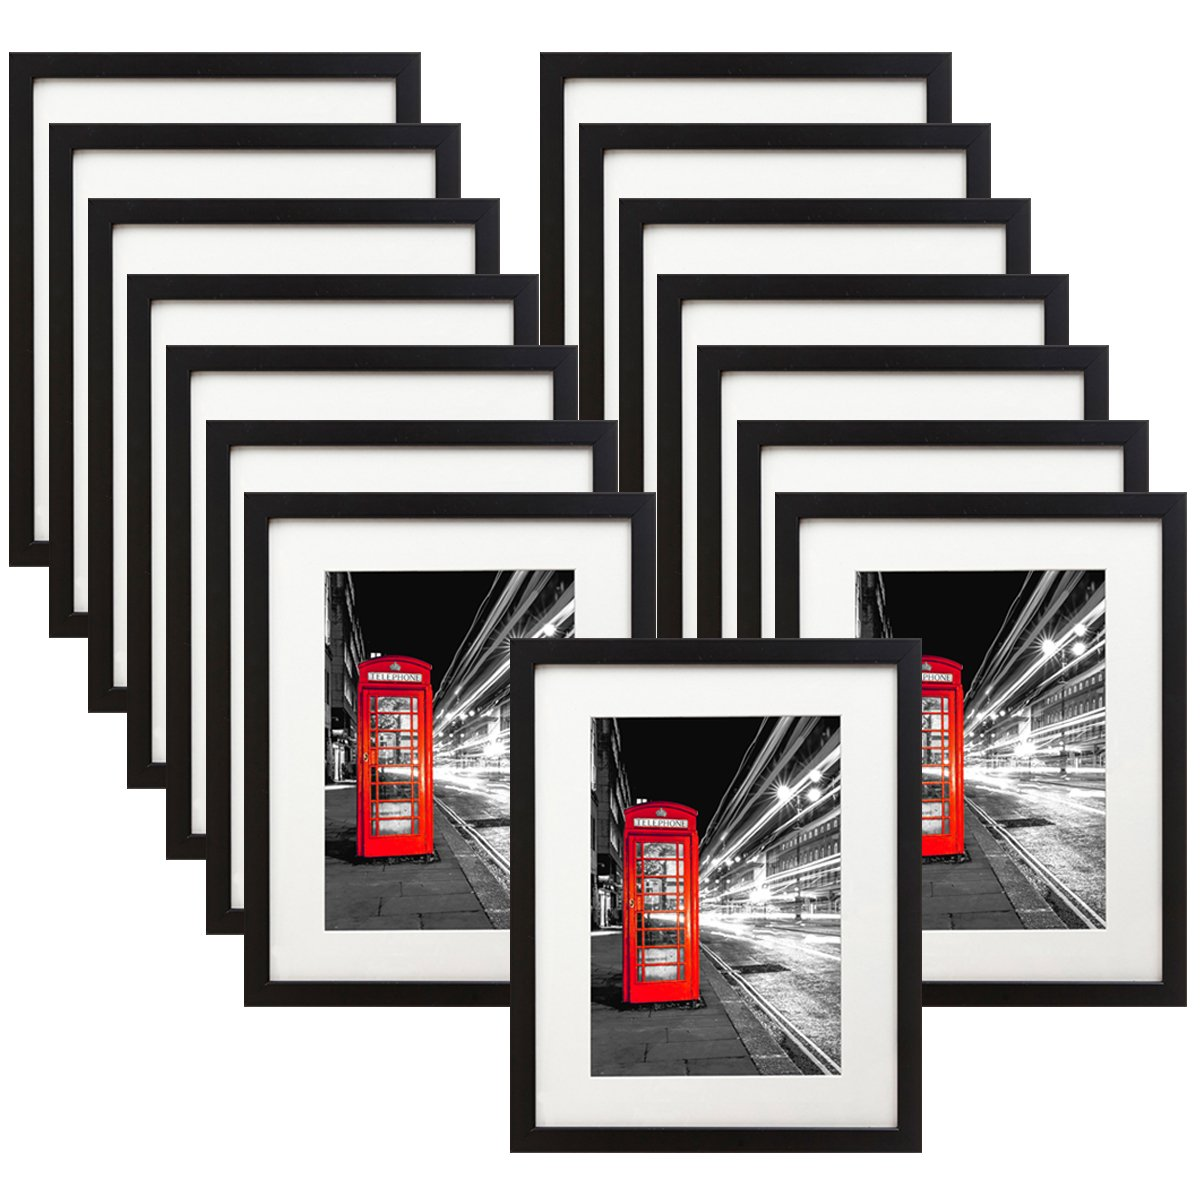 15 Pack - 11x14 Black Picture Frame - Made to Display Pictures 8x10 with Mat or 11x14 Without Mat - Wide Molding - Wall Mounting Material Included